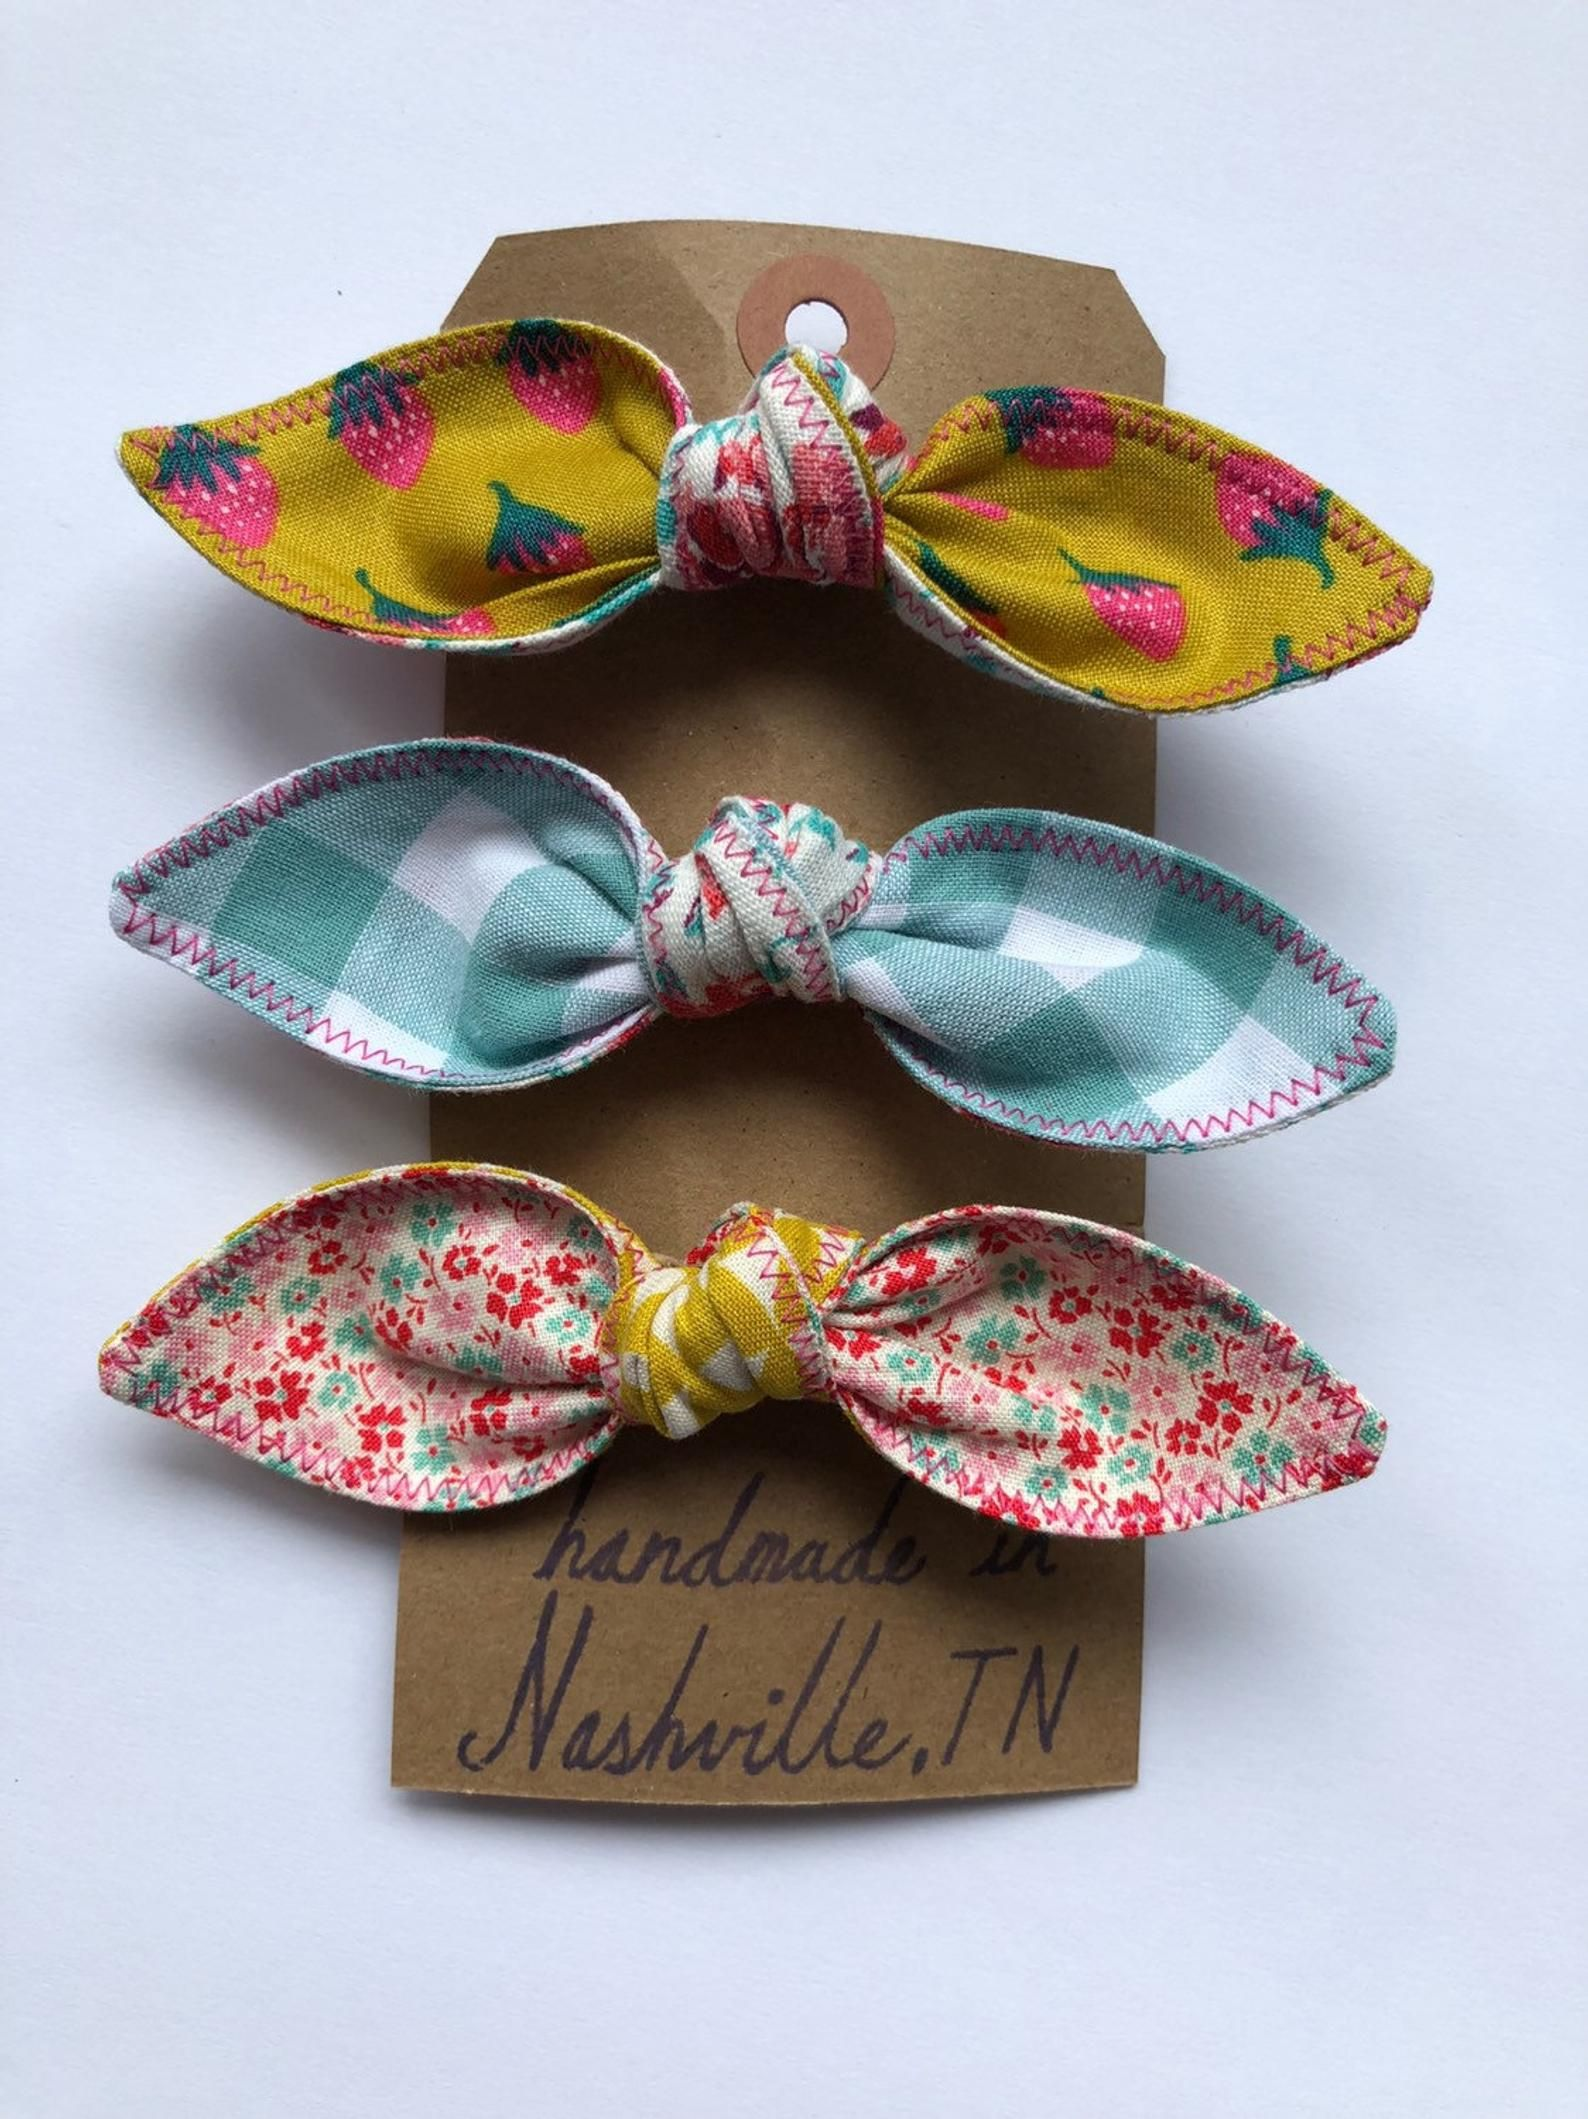 Homemade Homegirl Hairbows / Hair Bows / Made in Nashville / Barrettes / Strawberry Bow / Hair bow / Strawberry Hair Bow